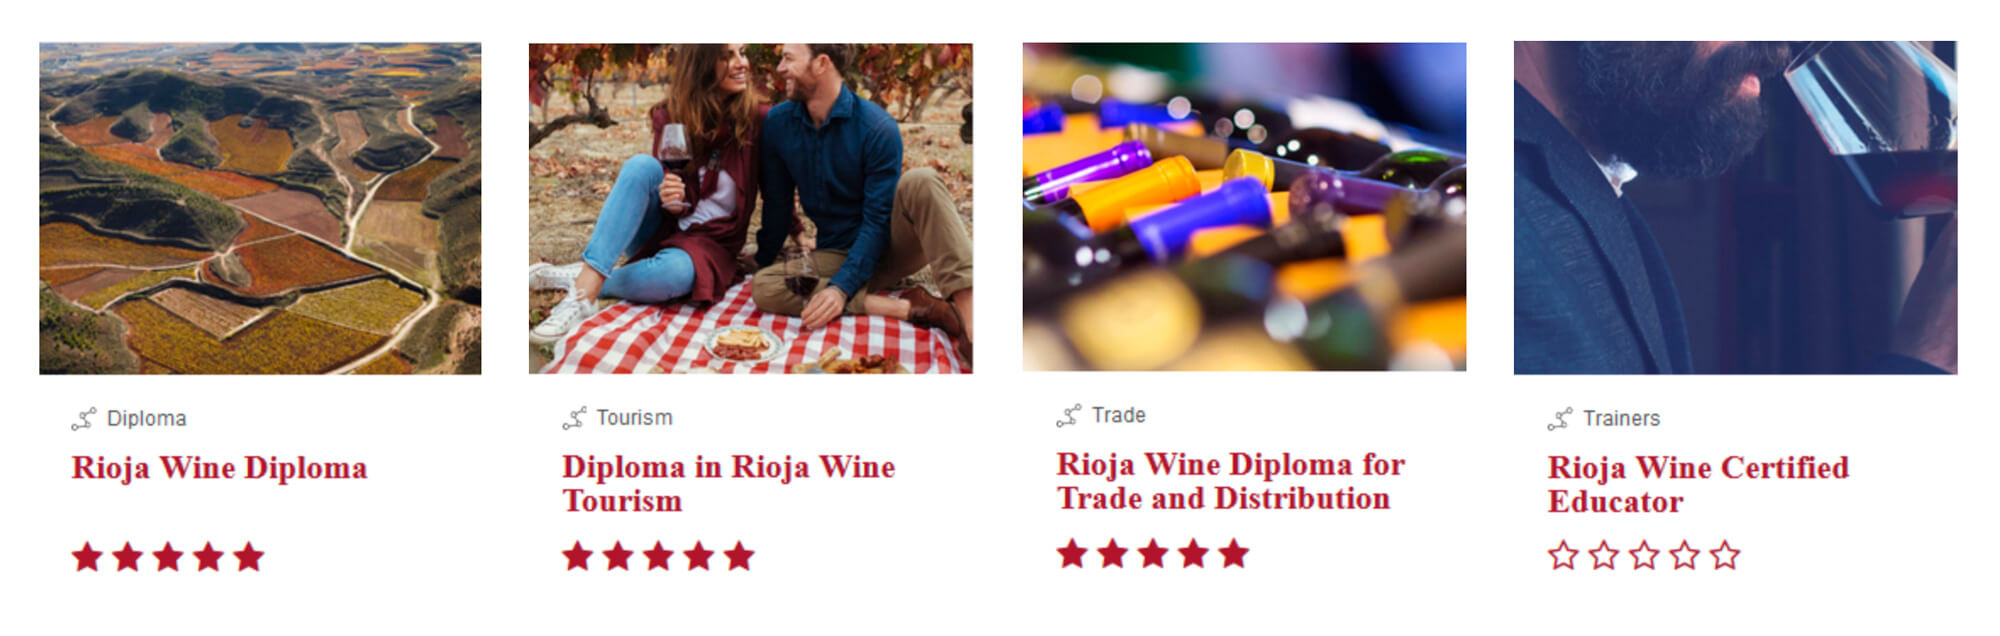 Highlevel elearning platform to improve your knowledge about wines from Rioja